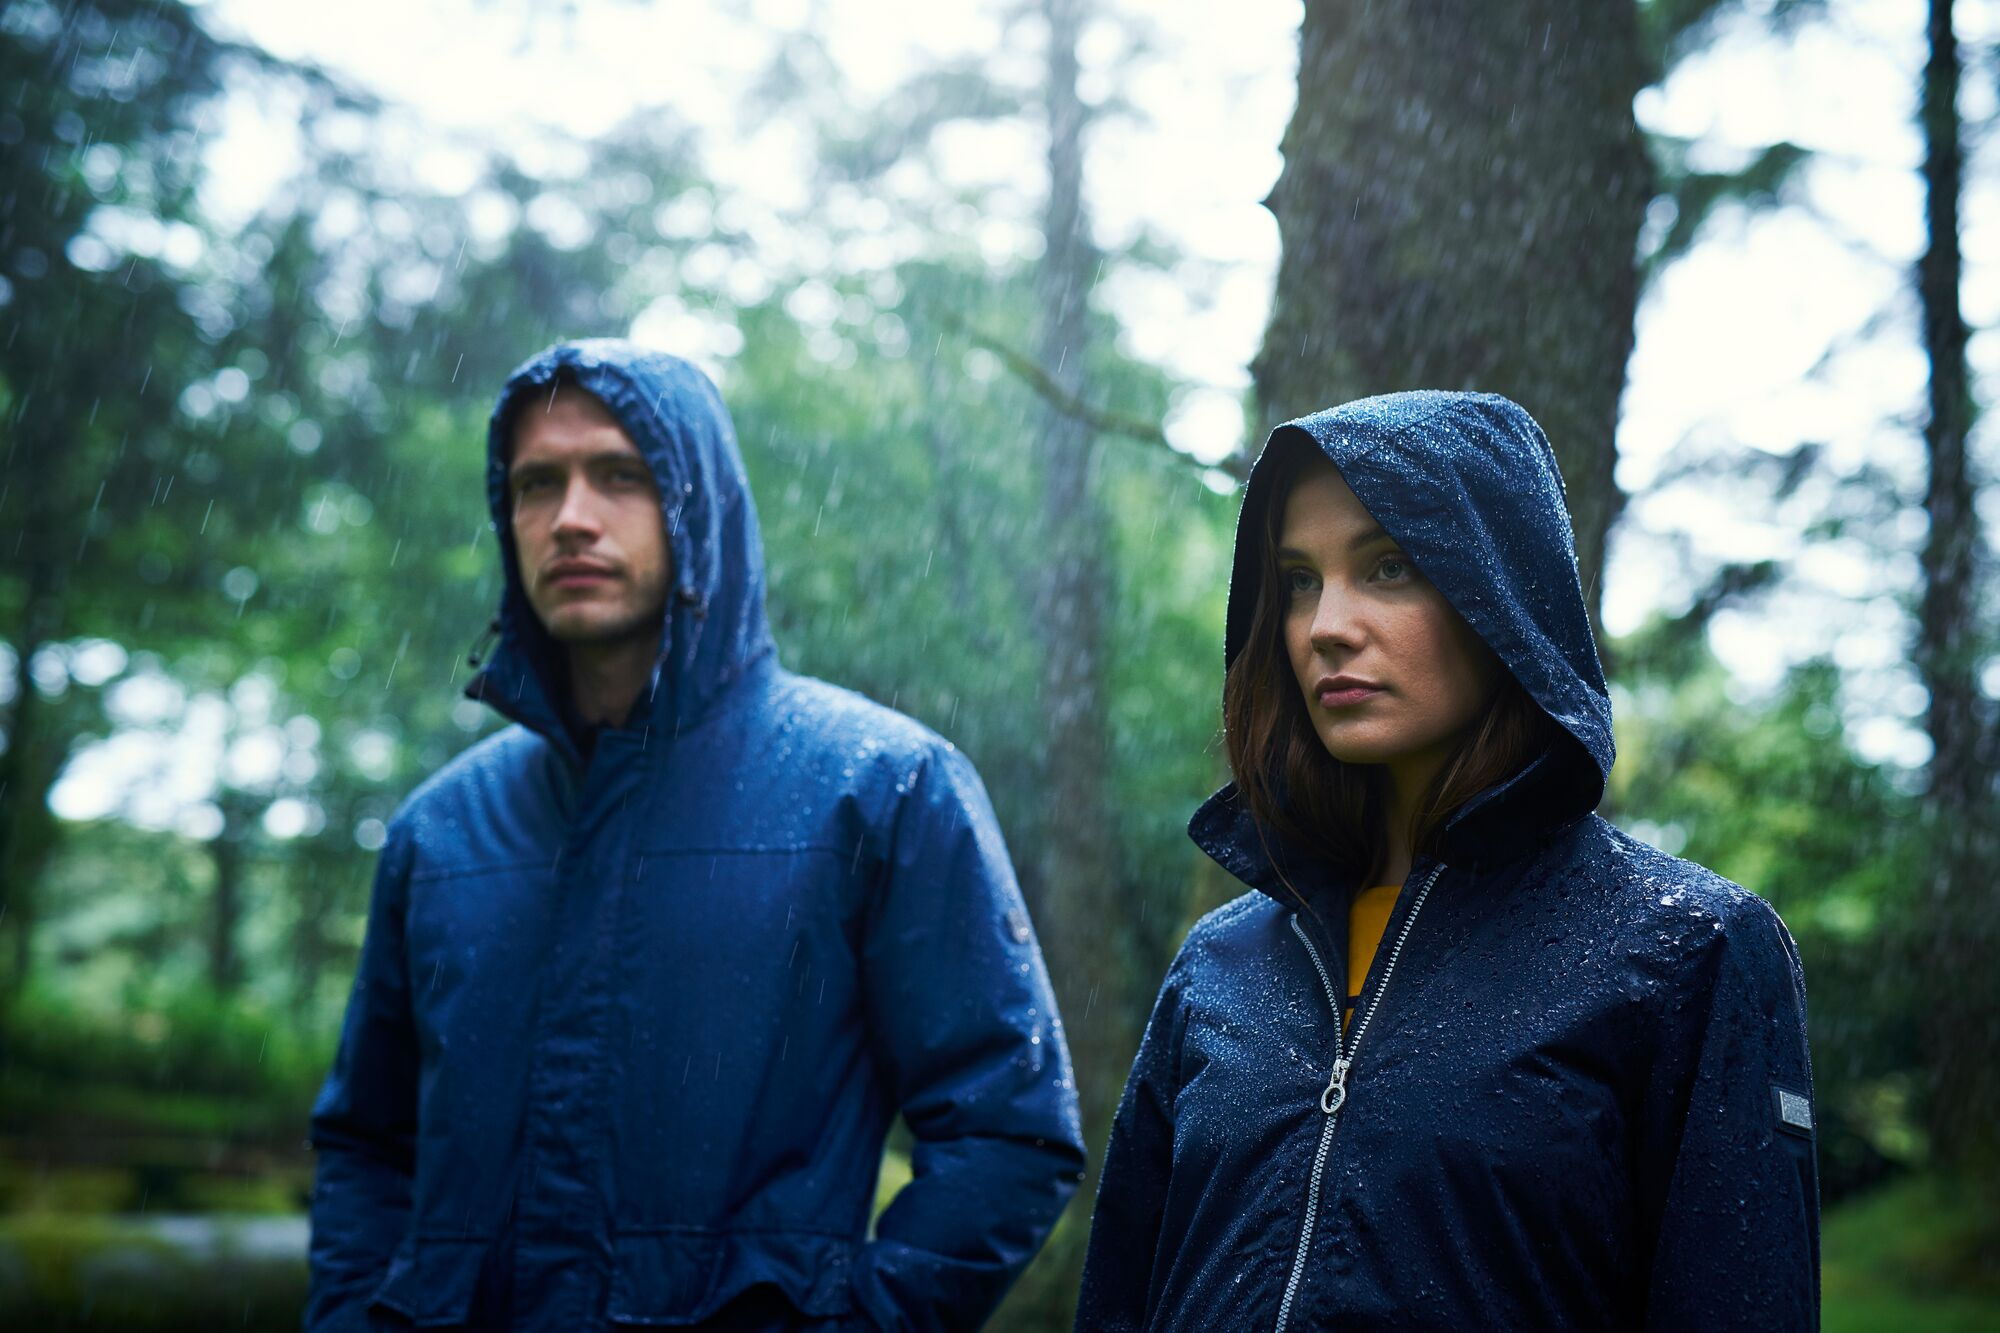 Man and woman wearing waterproof jackets in the rain